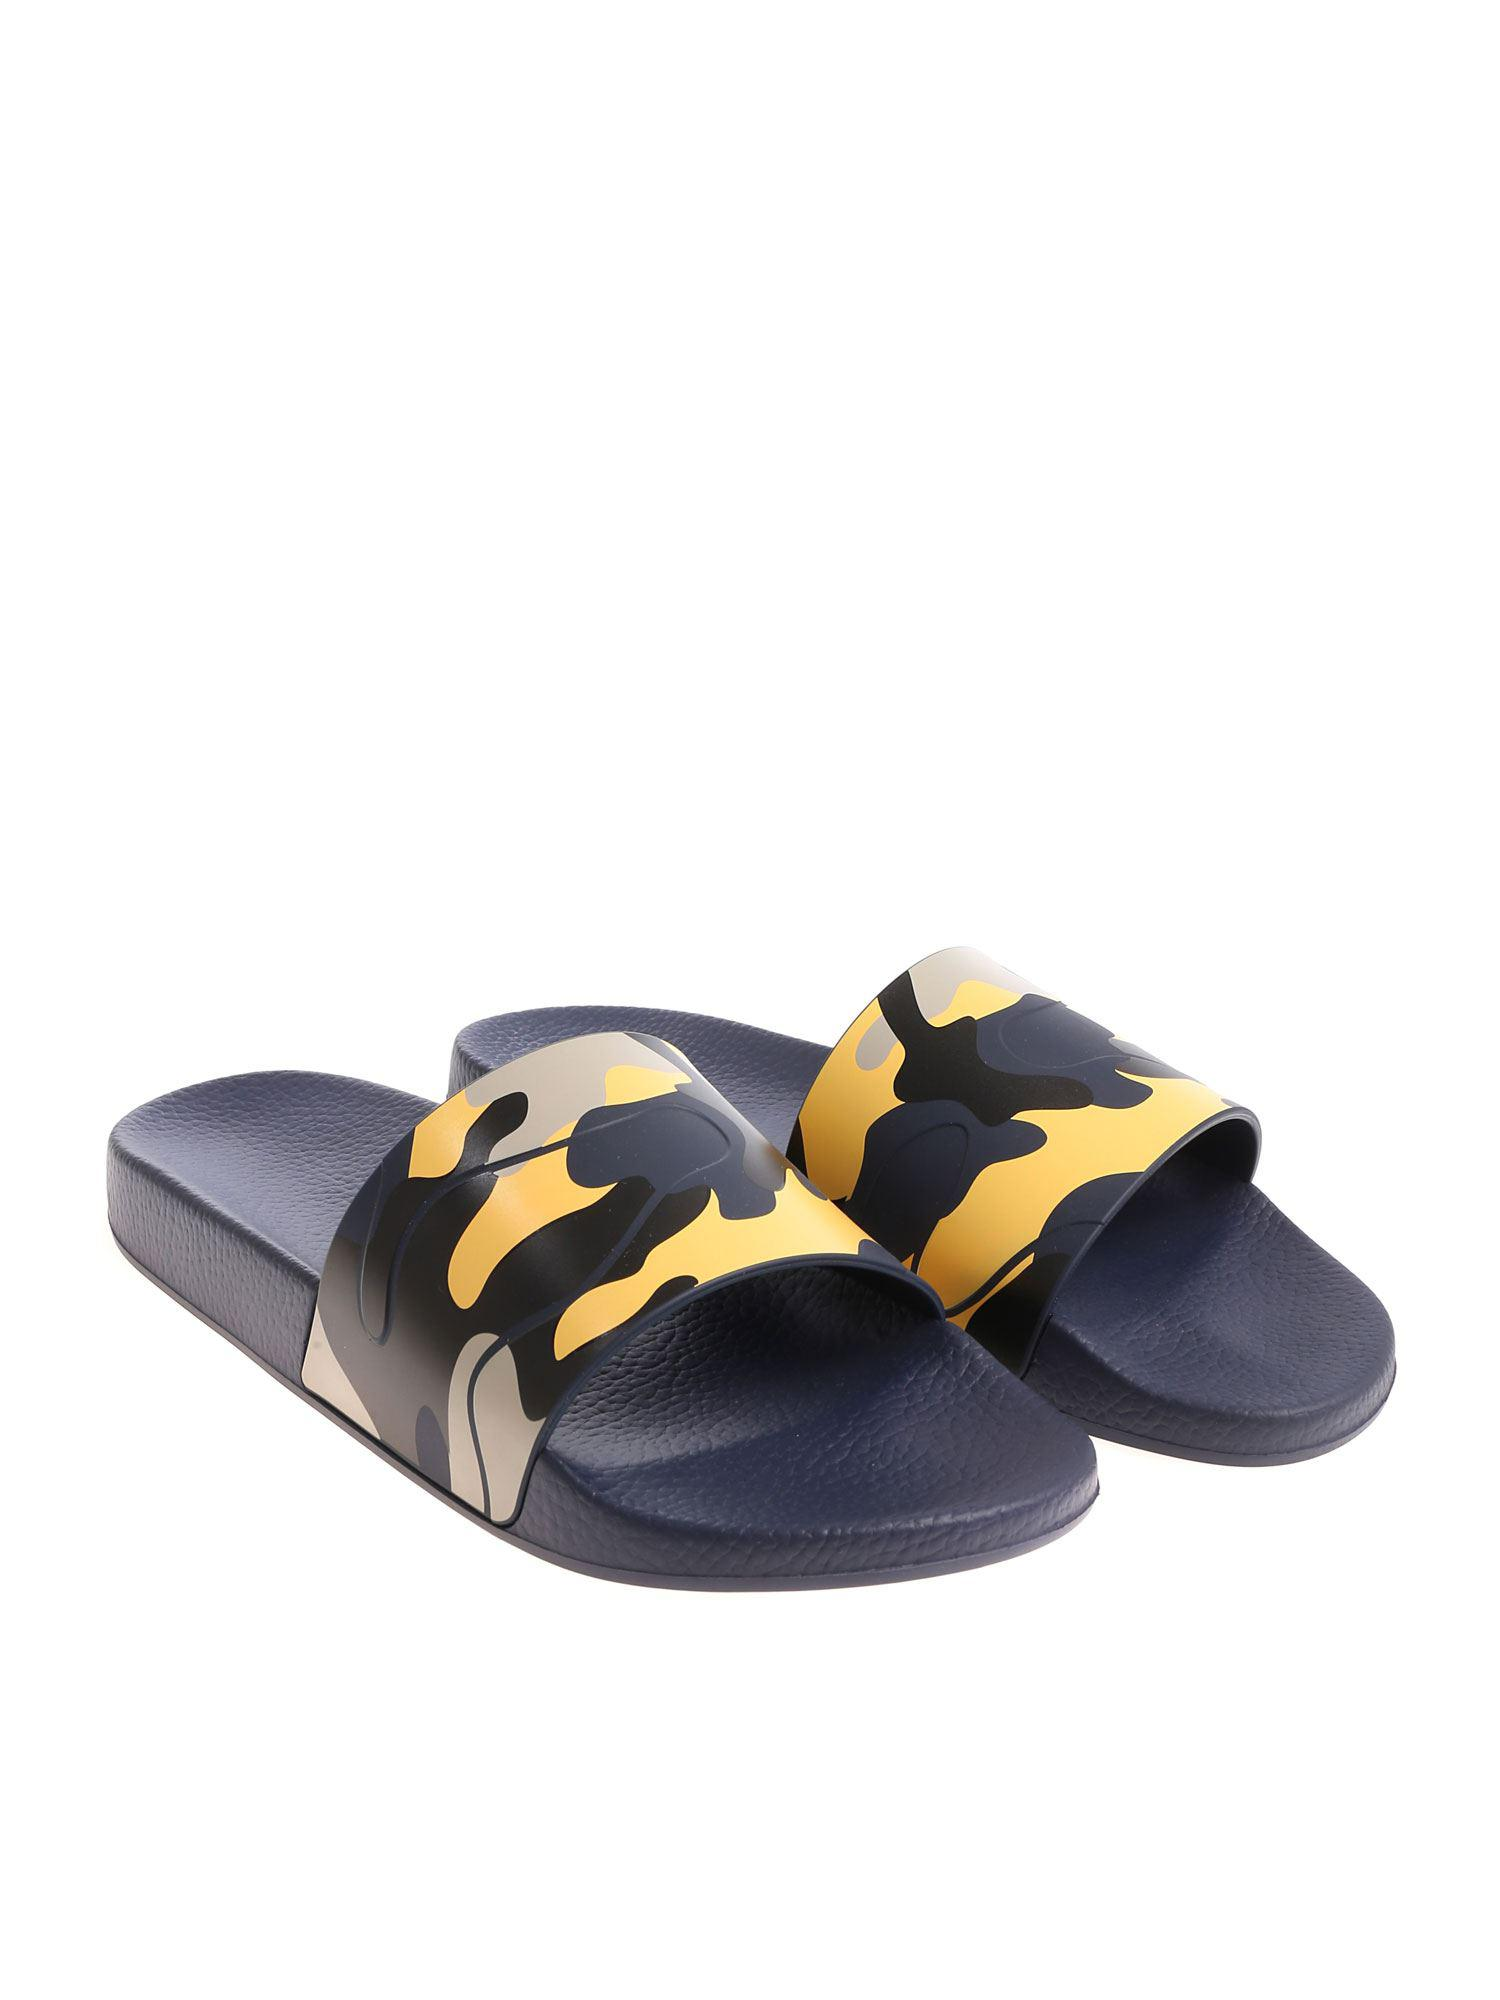 45a5a6212183 Valentino Blue Camouflage Slides in Blue for Men - Save 40% - Lyst